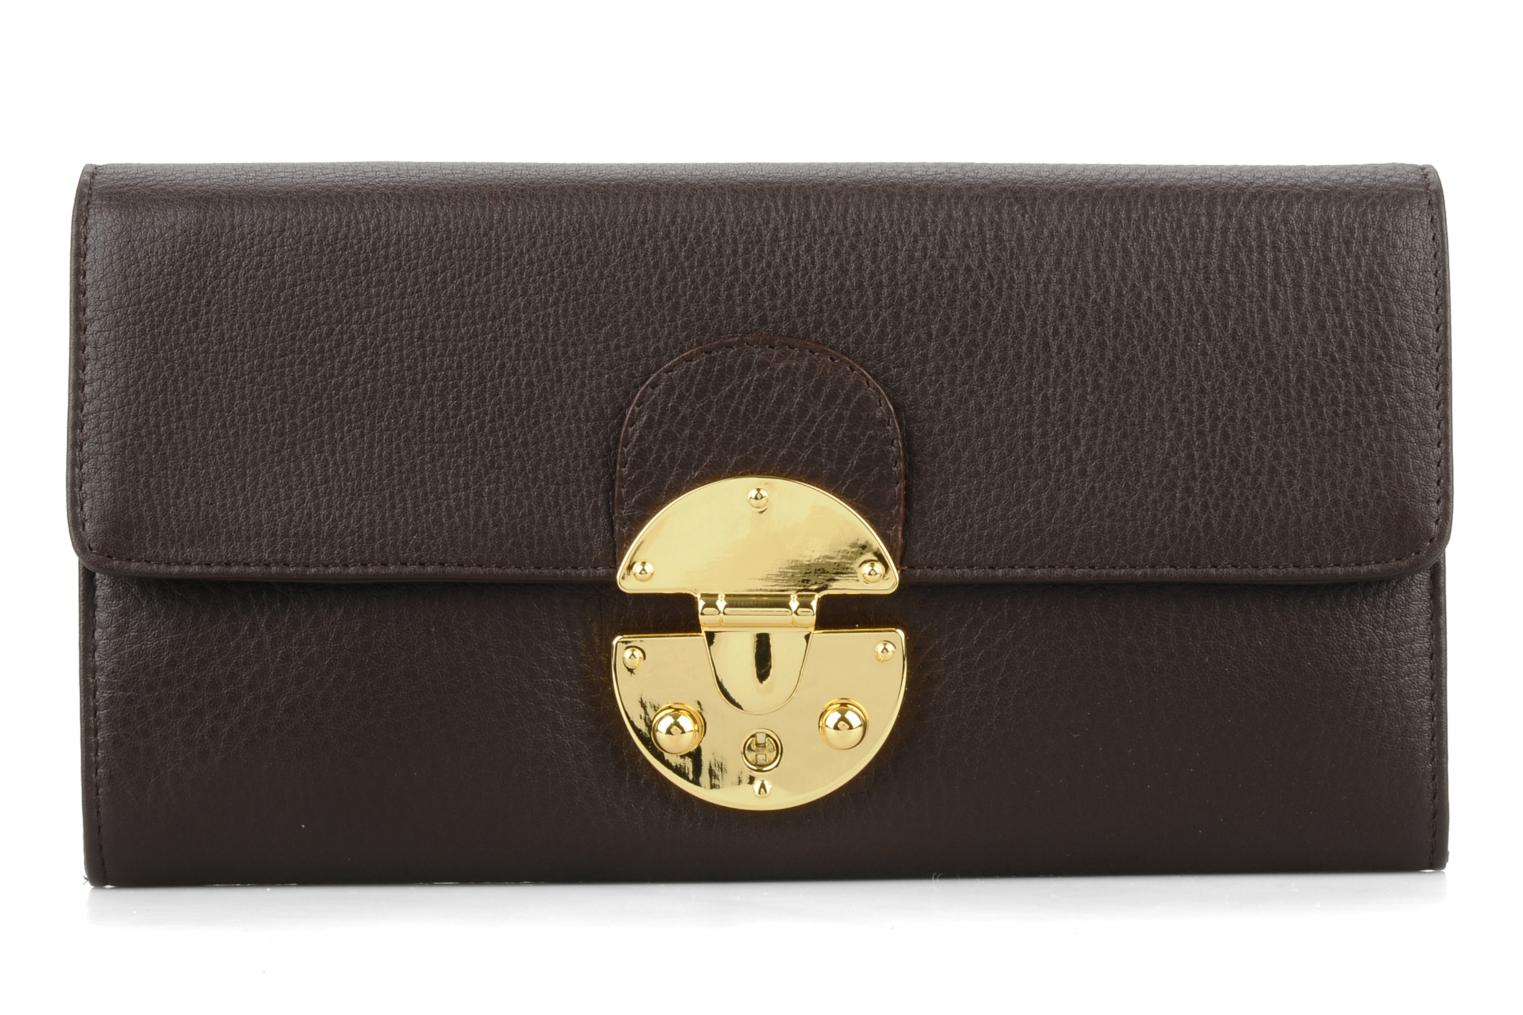 Rose Chocolate grained leather